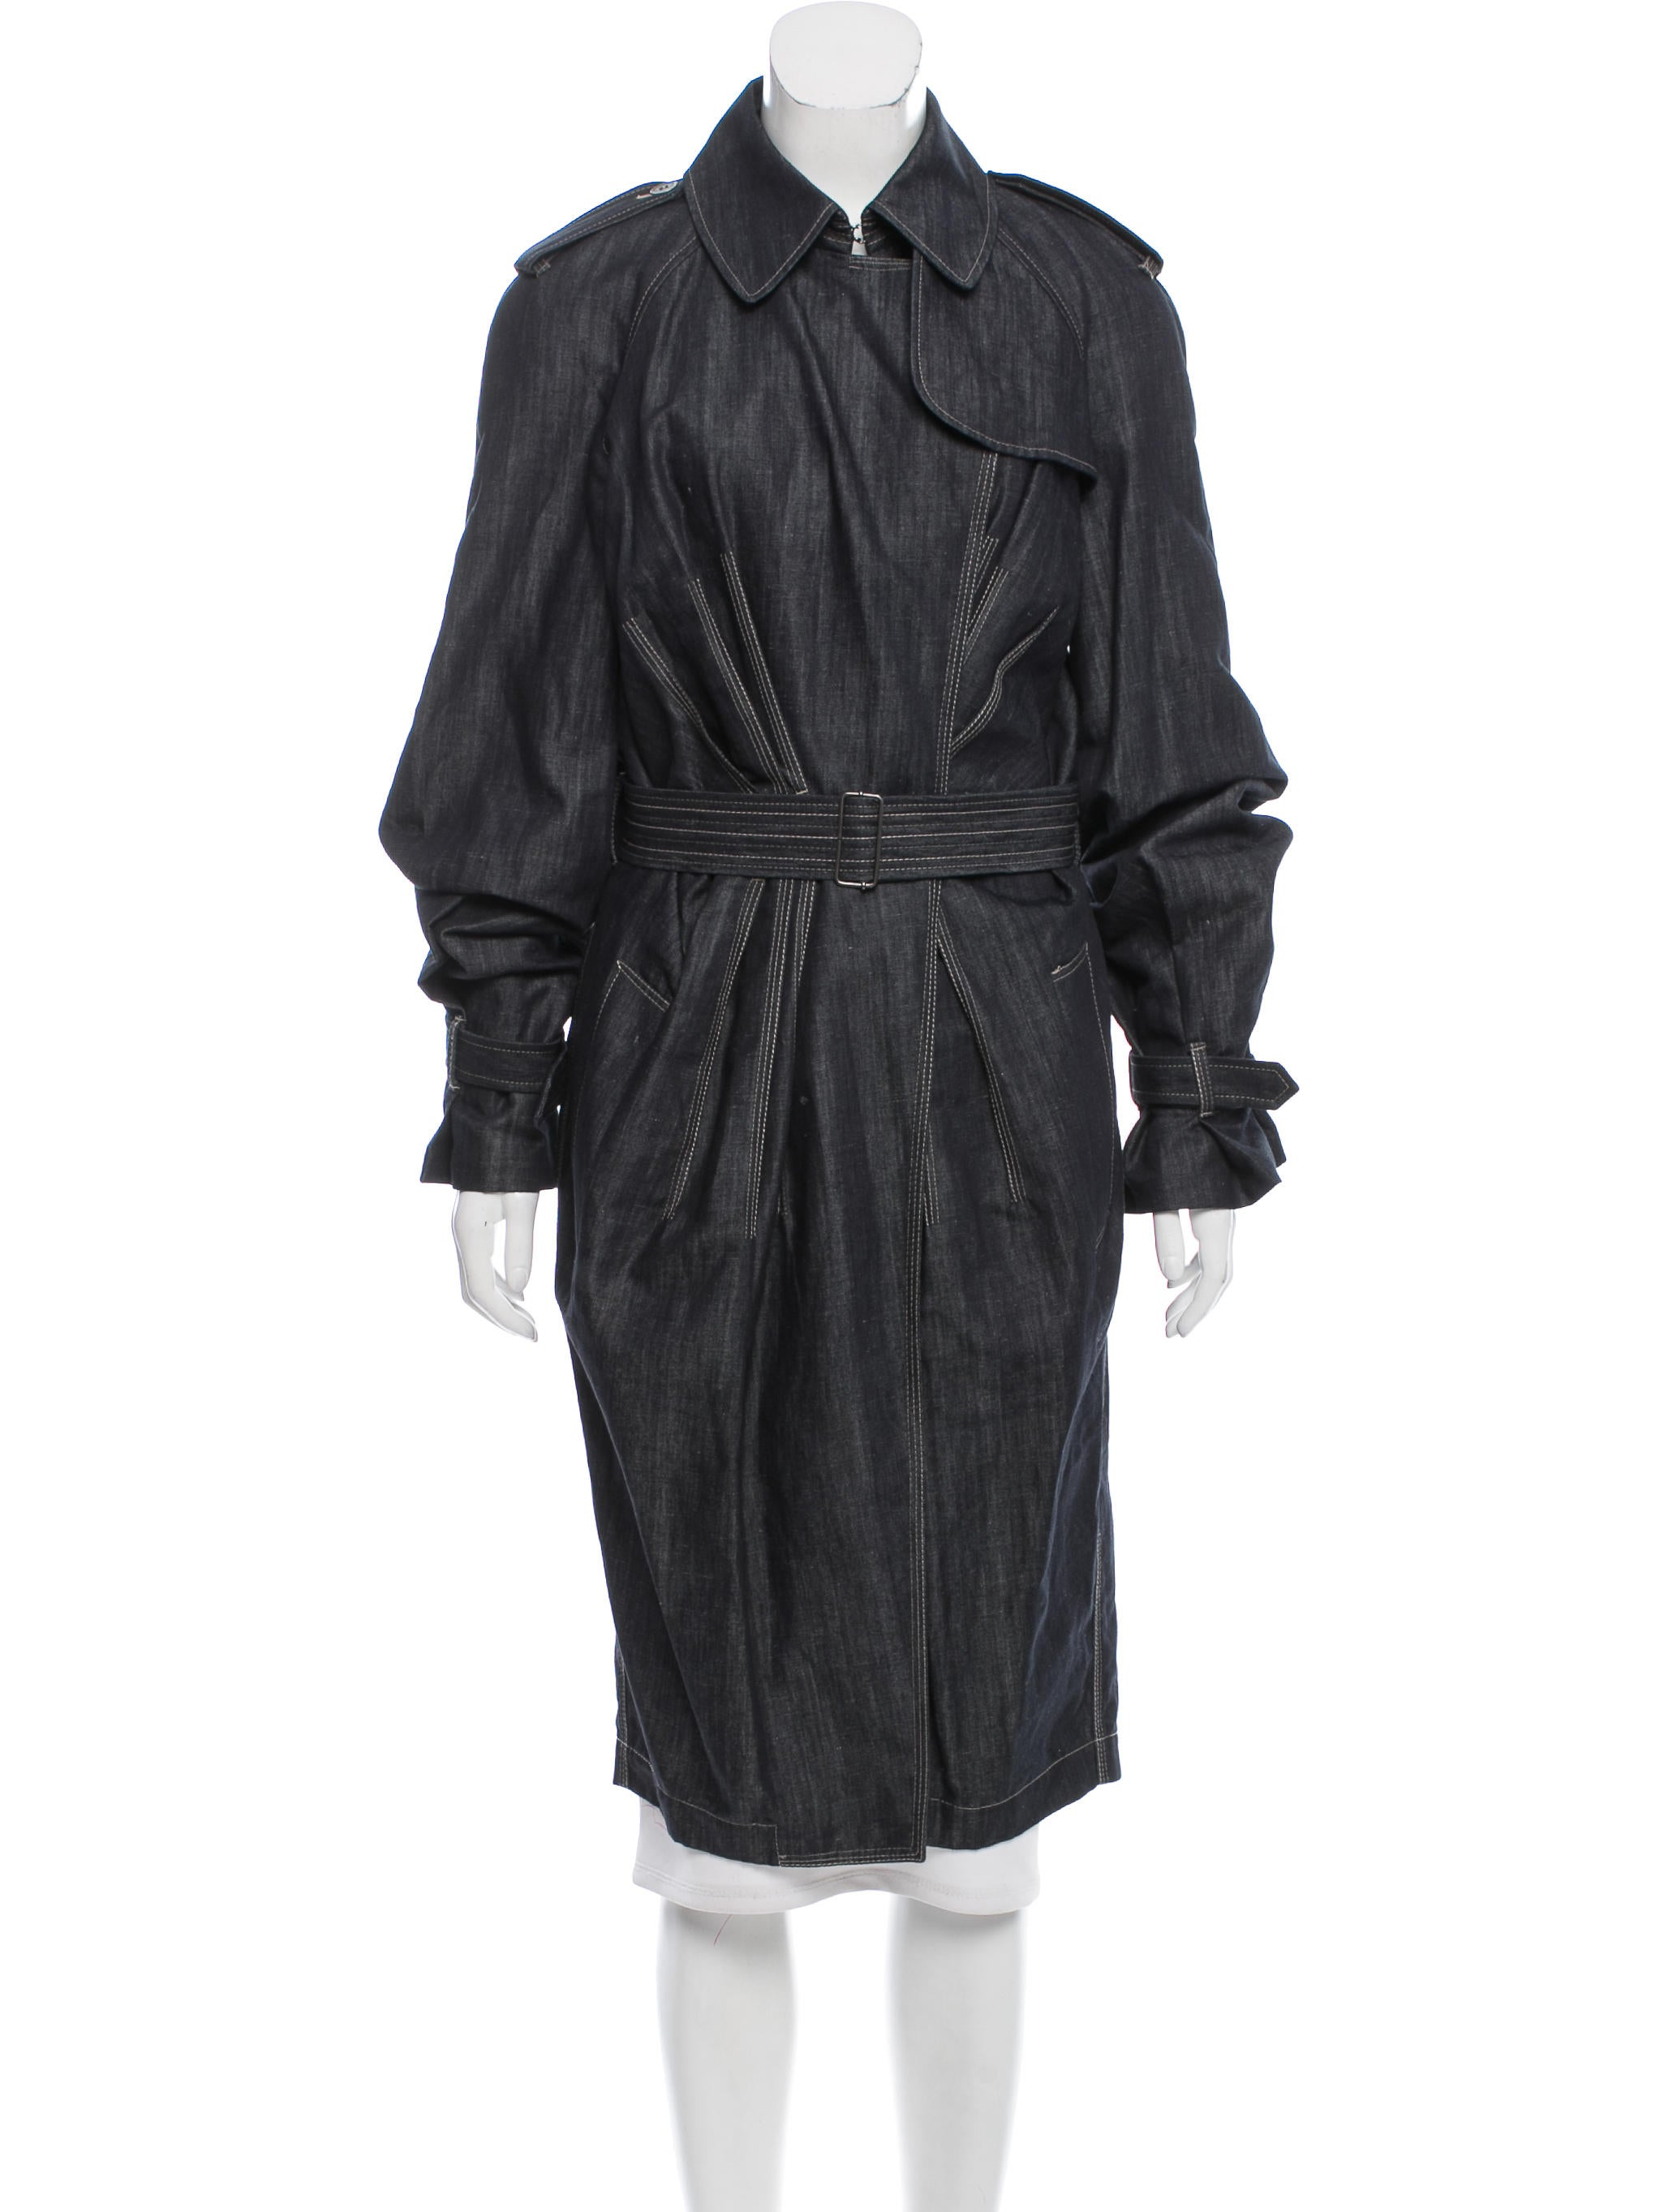 Jean paul gaultier chambray trench coat clothing for Jean paul gaultier clothing